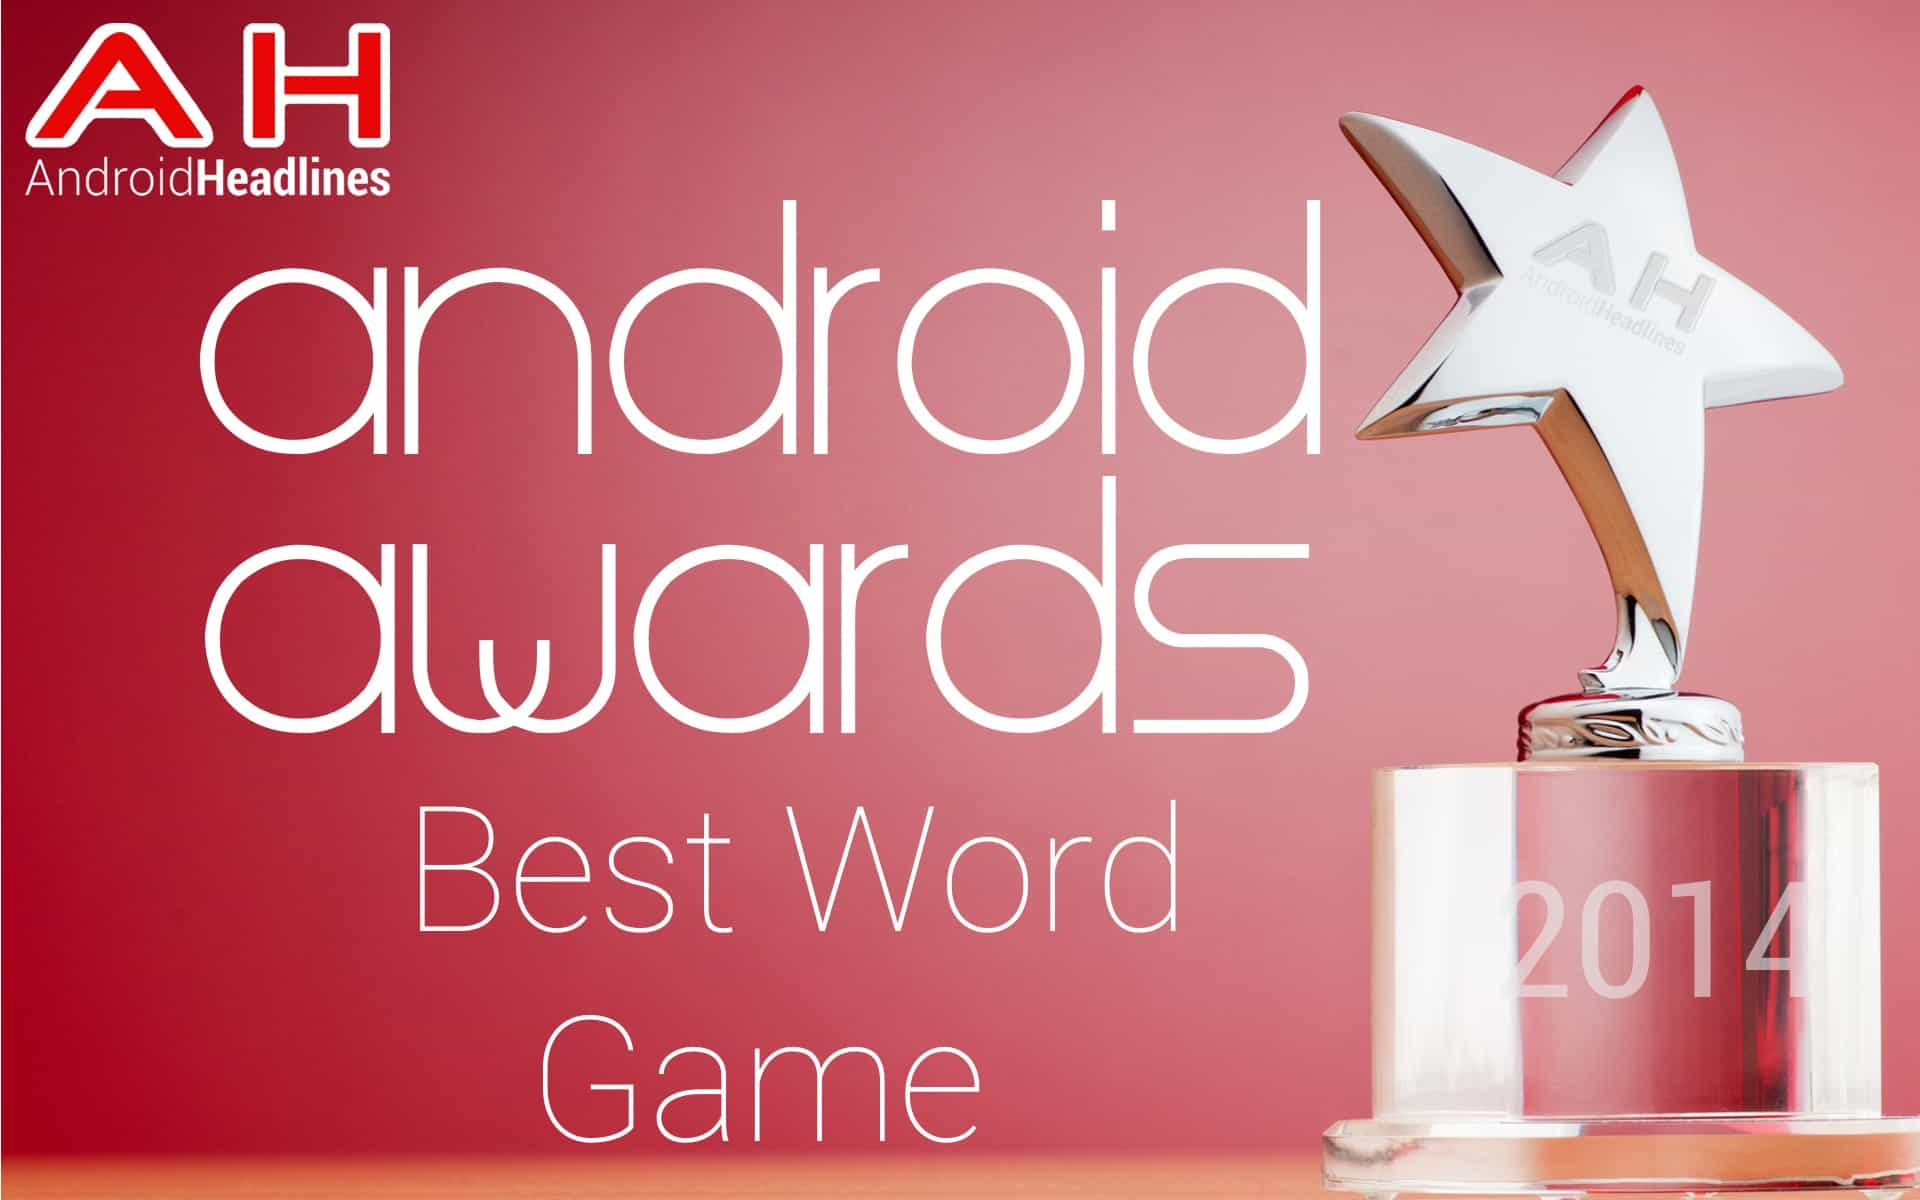 AH Awards 2015 Best Word Game Android